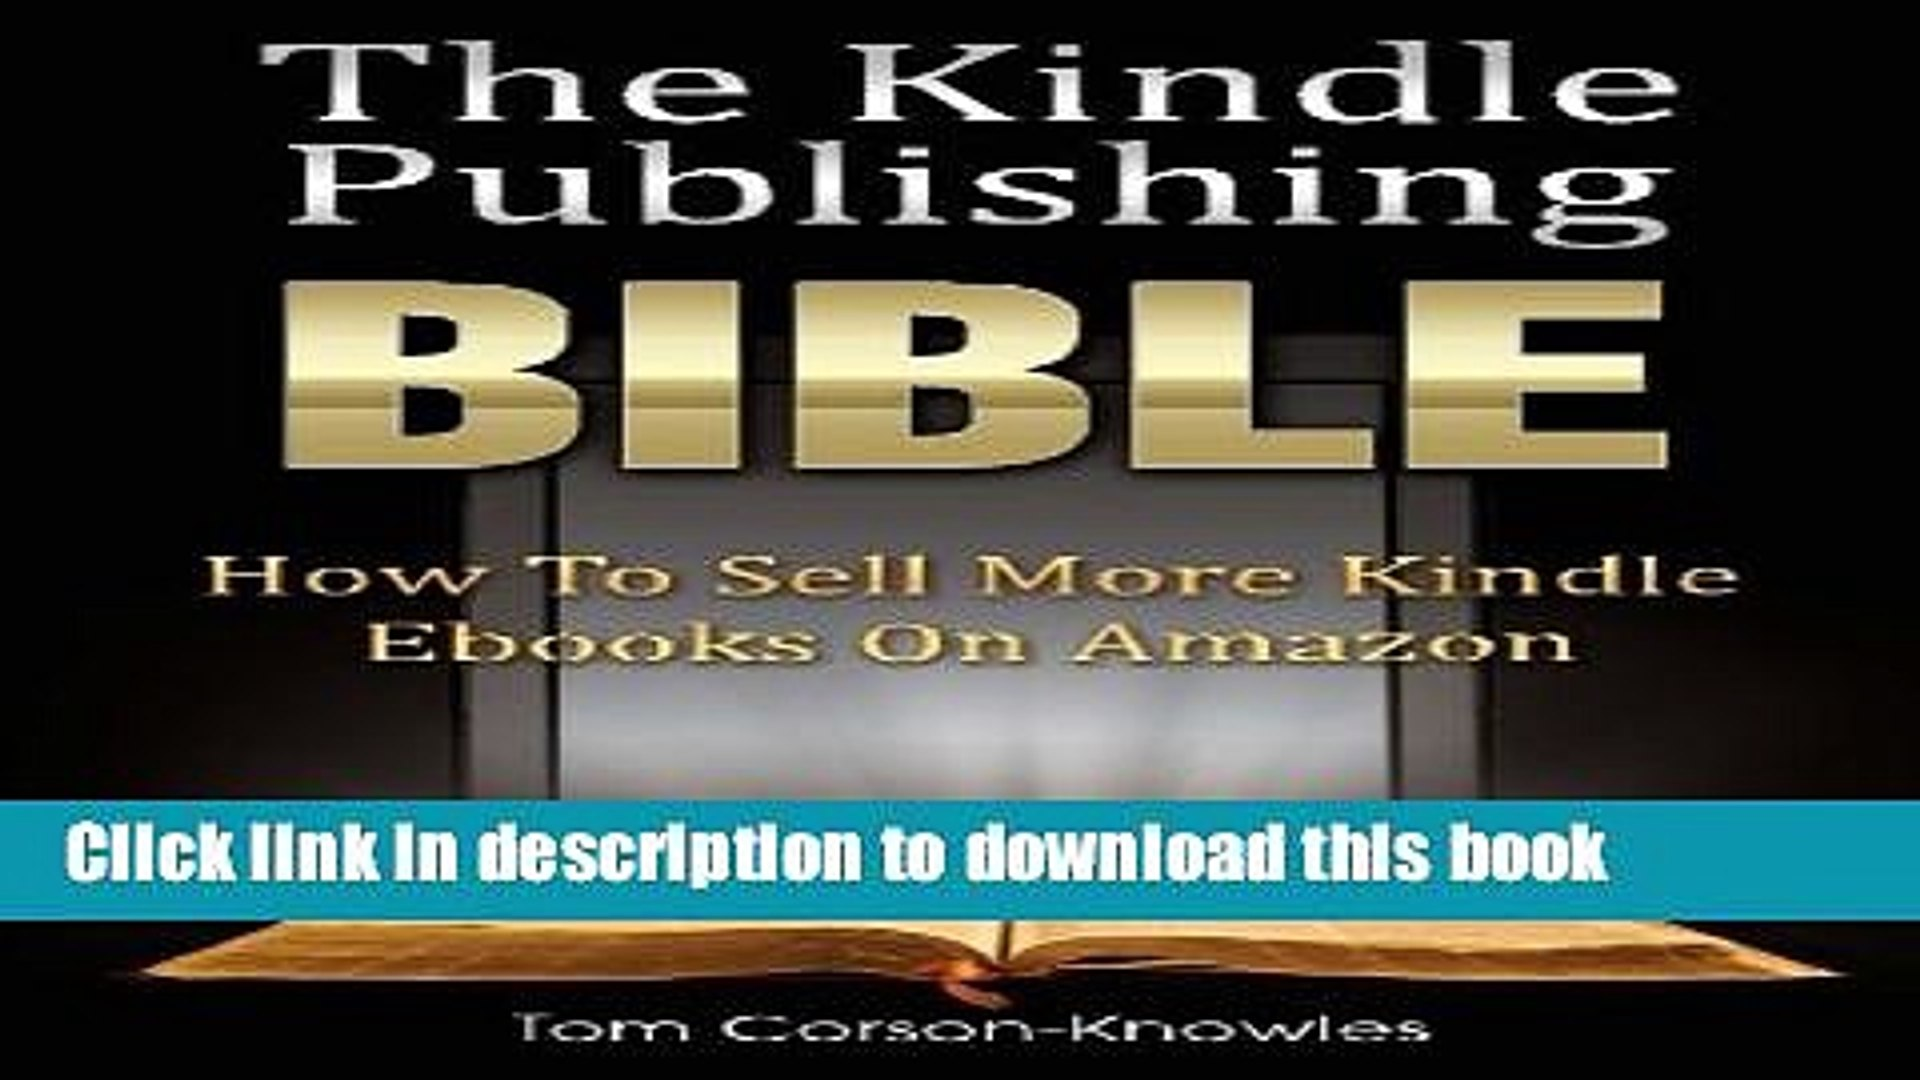 Read The Kindle Publishing Bible: How To Sell More Kindle Ebooks on Amazon (The Kindle Bible)